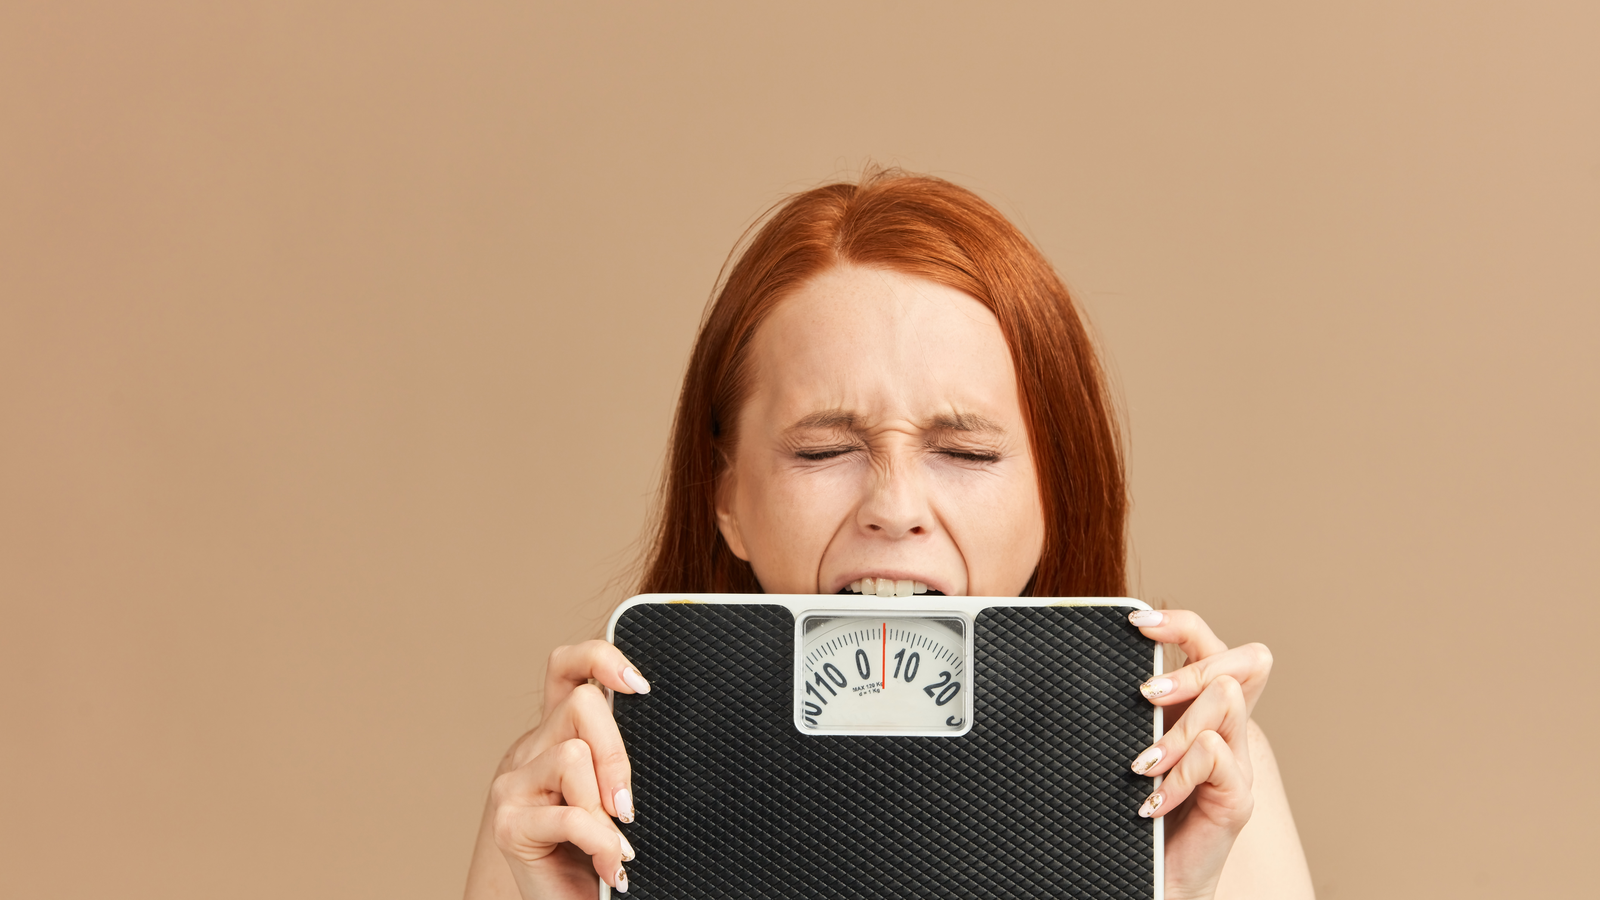 Three mental roadblocks stopping you from losing weight